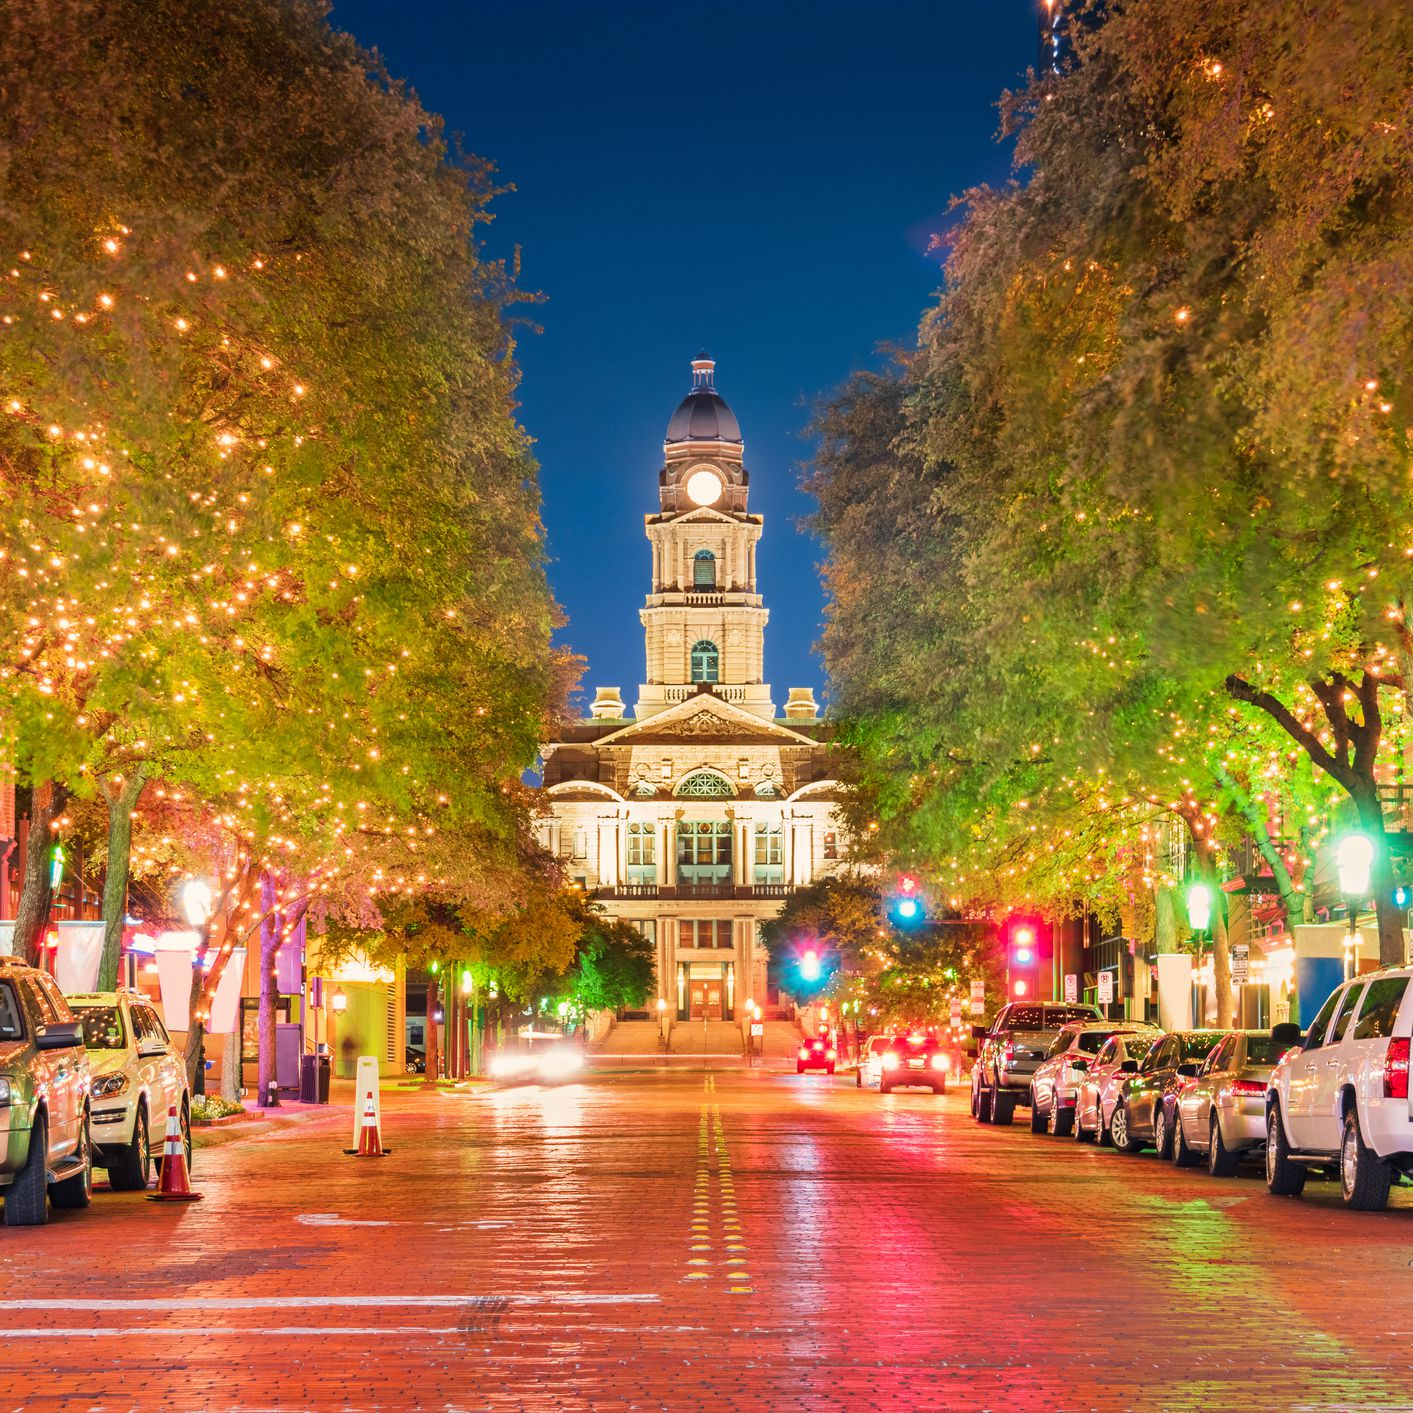 Nightlife in Fort Worth: Best Bars, Clubs, & More